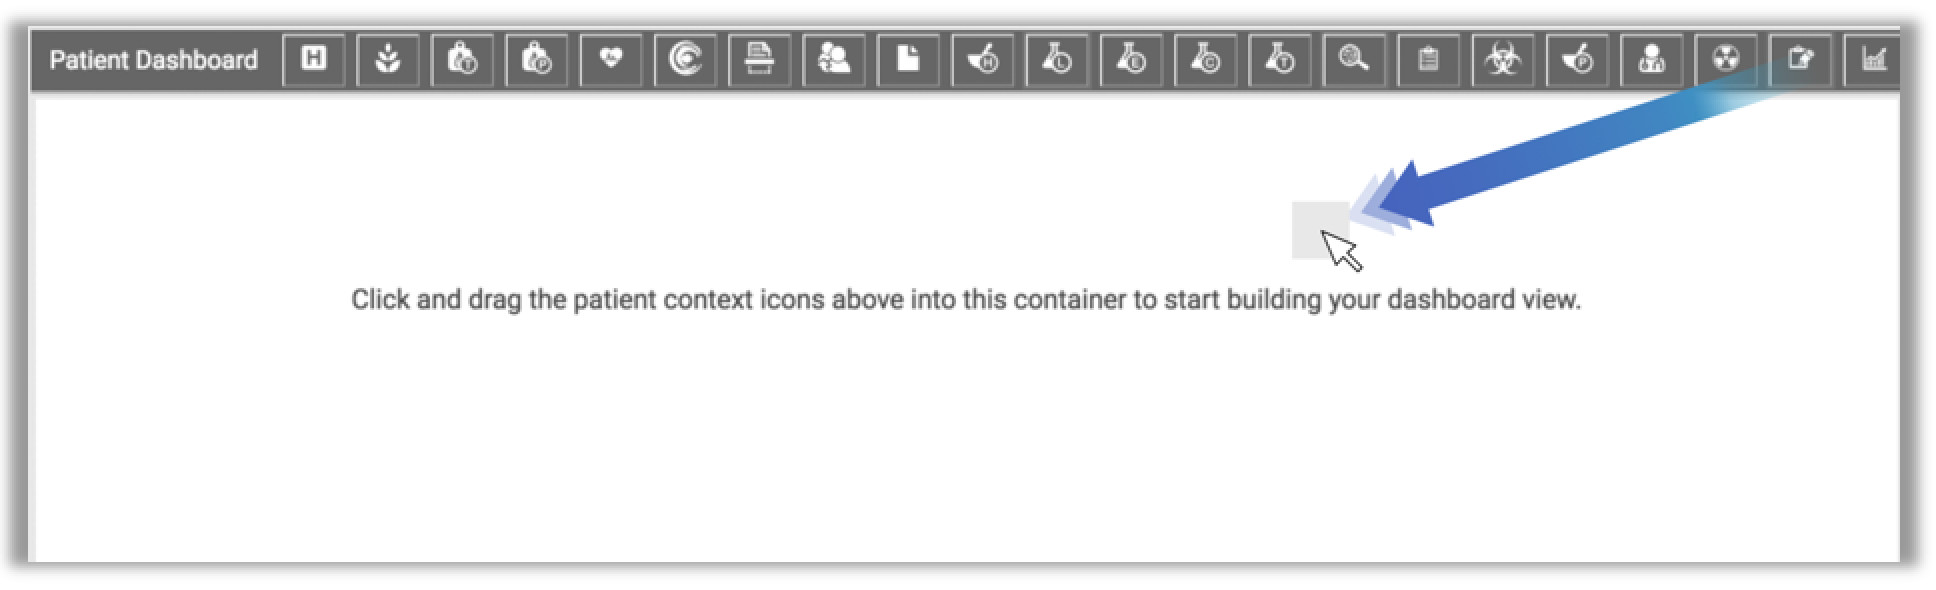 Image showing how to open the module form the dashboard icon